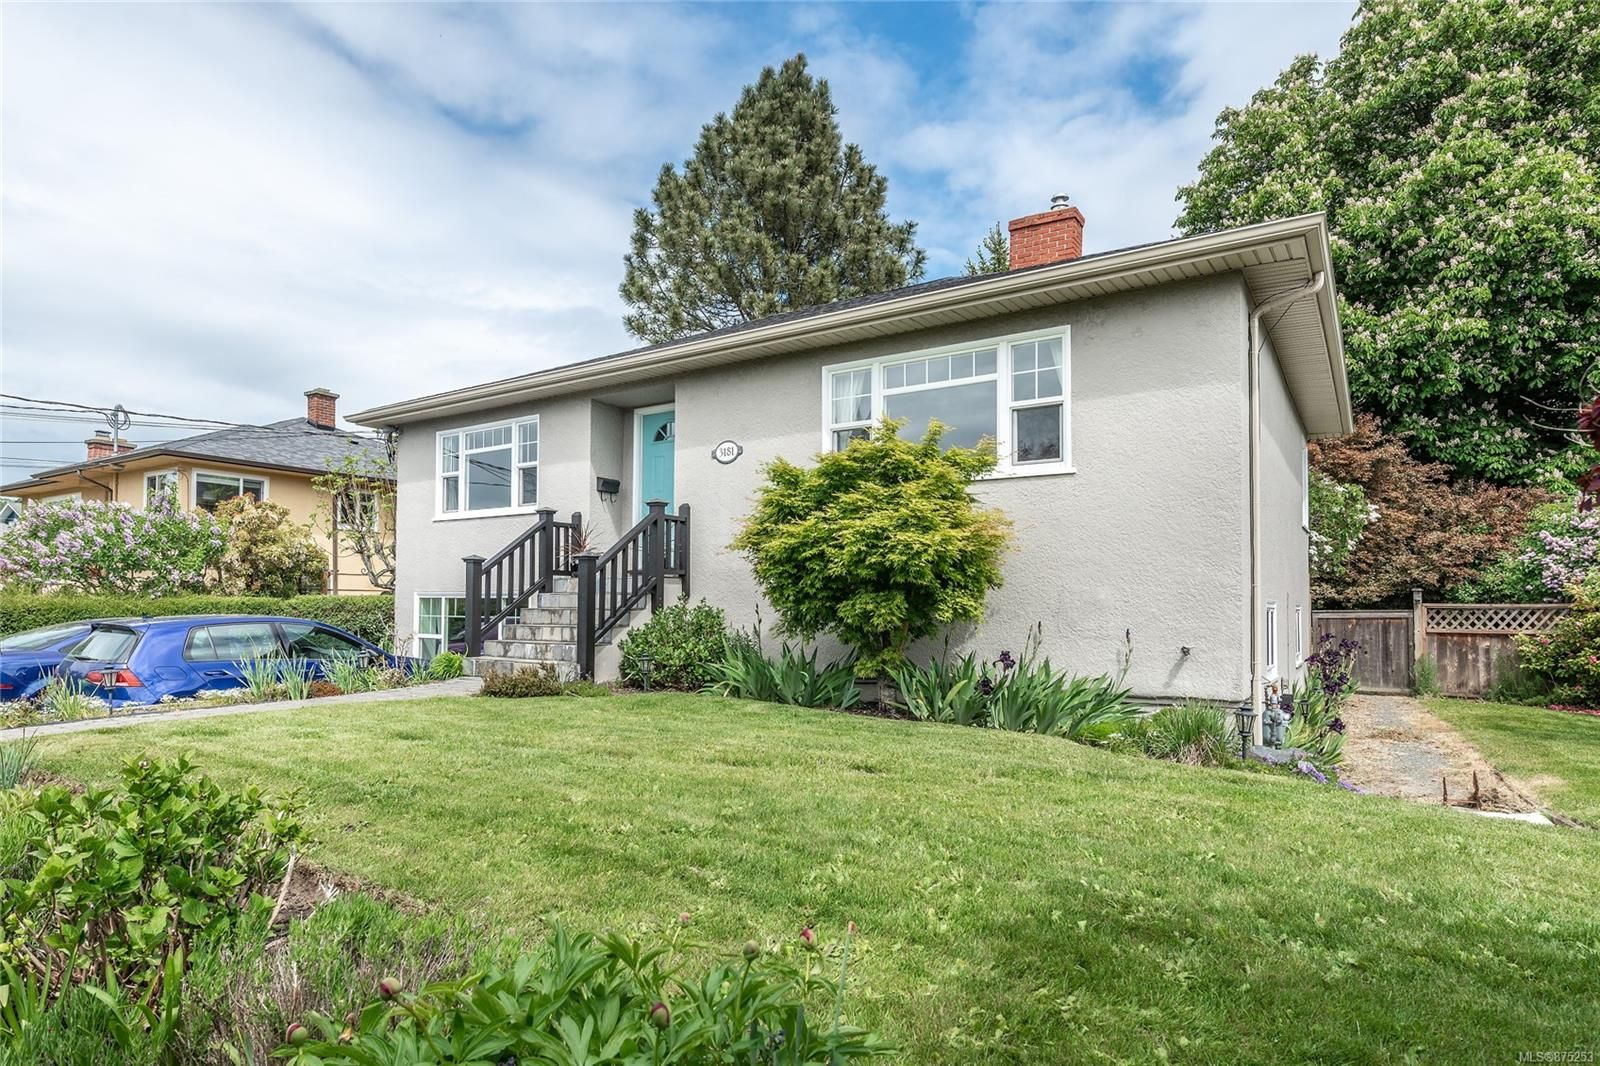 Main Photo: 3181 Service St in : SE Camosun House for sale (Saanich East)  : MLS®# 875253